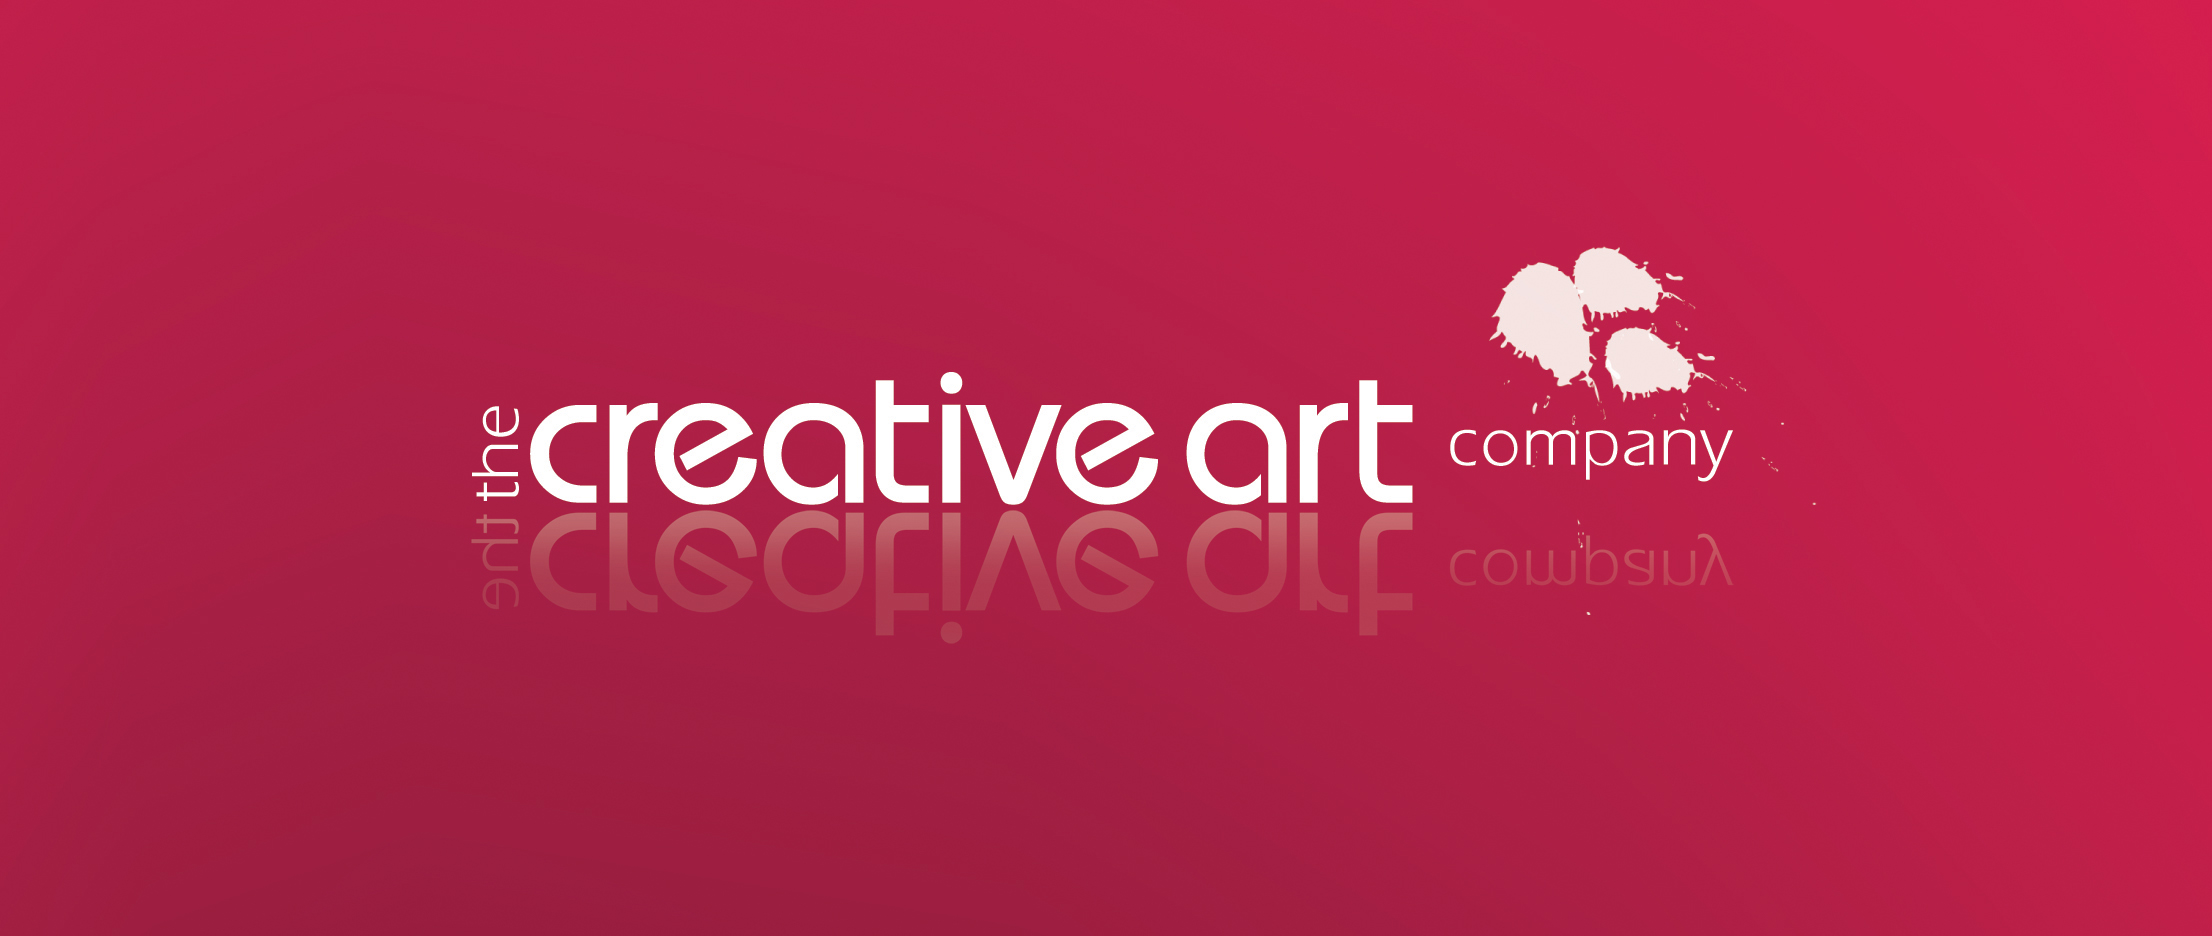 File:The creative art company logo 5.jpg - Wikimedia Commons